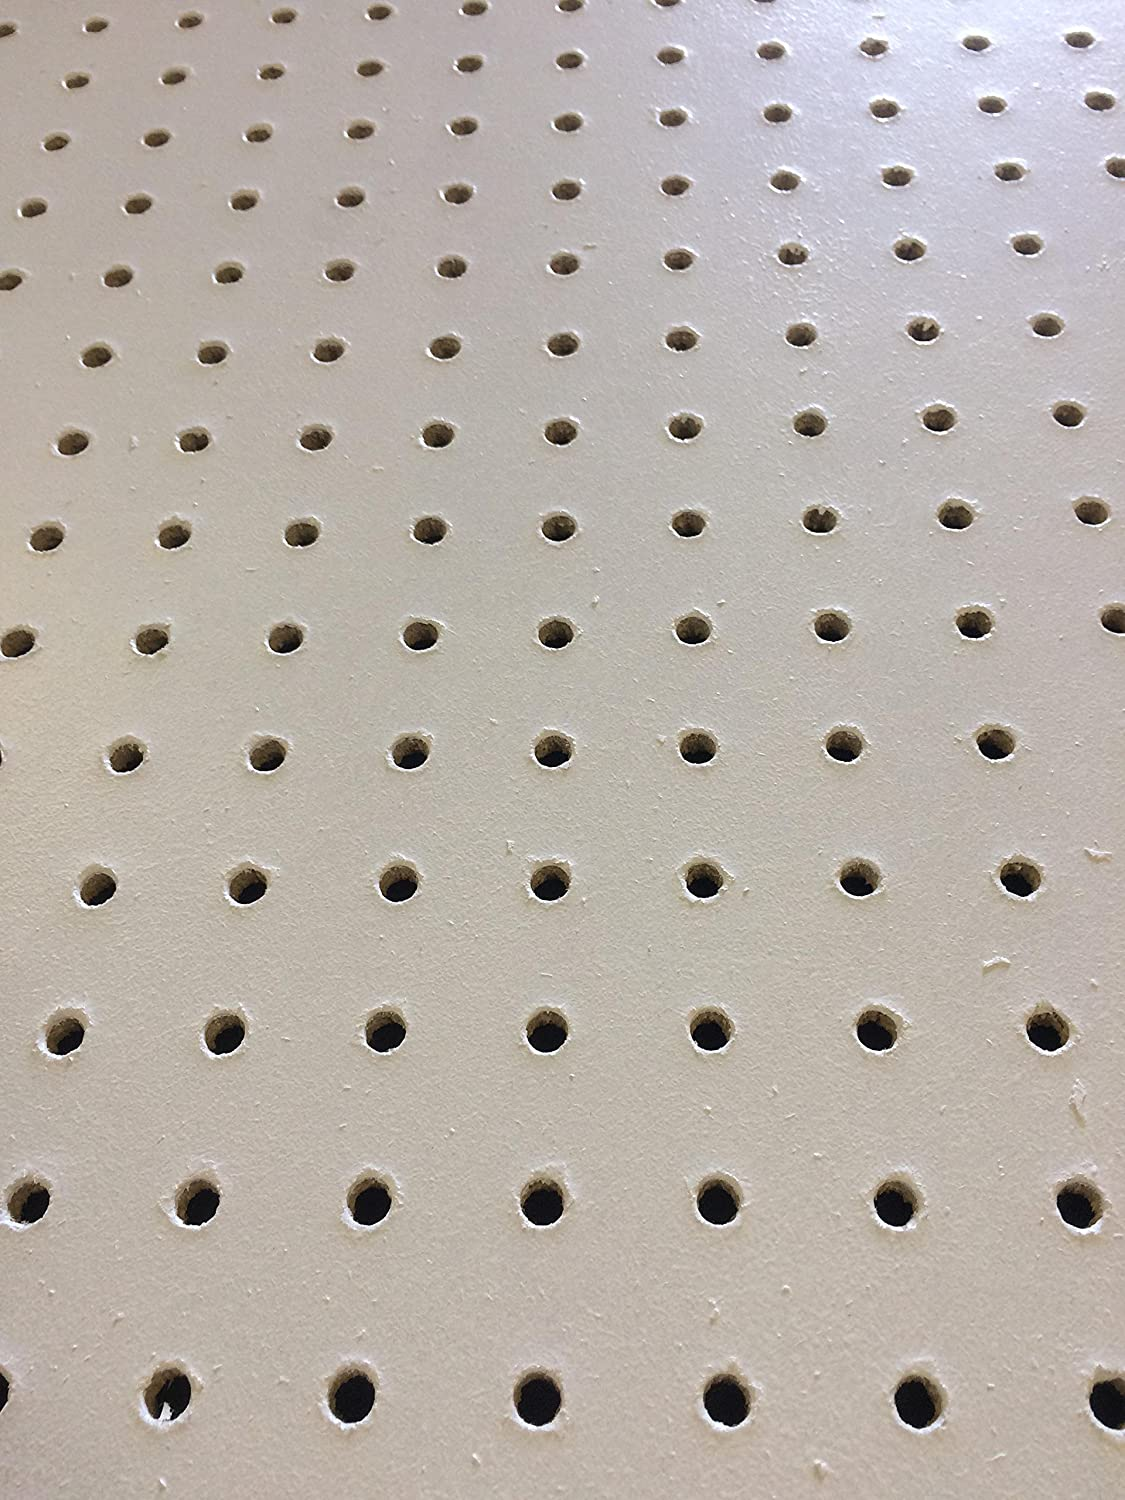 6mm White Pegboard 60 x 60cm 25.4mm Hole Centre 7.1mm hole Unbranded